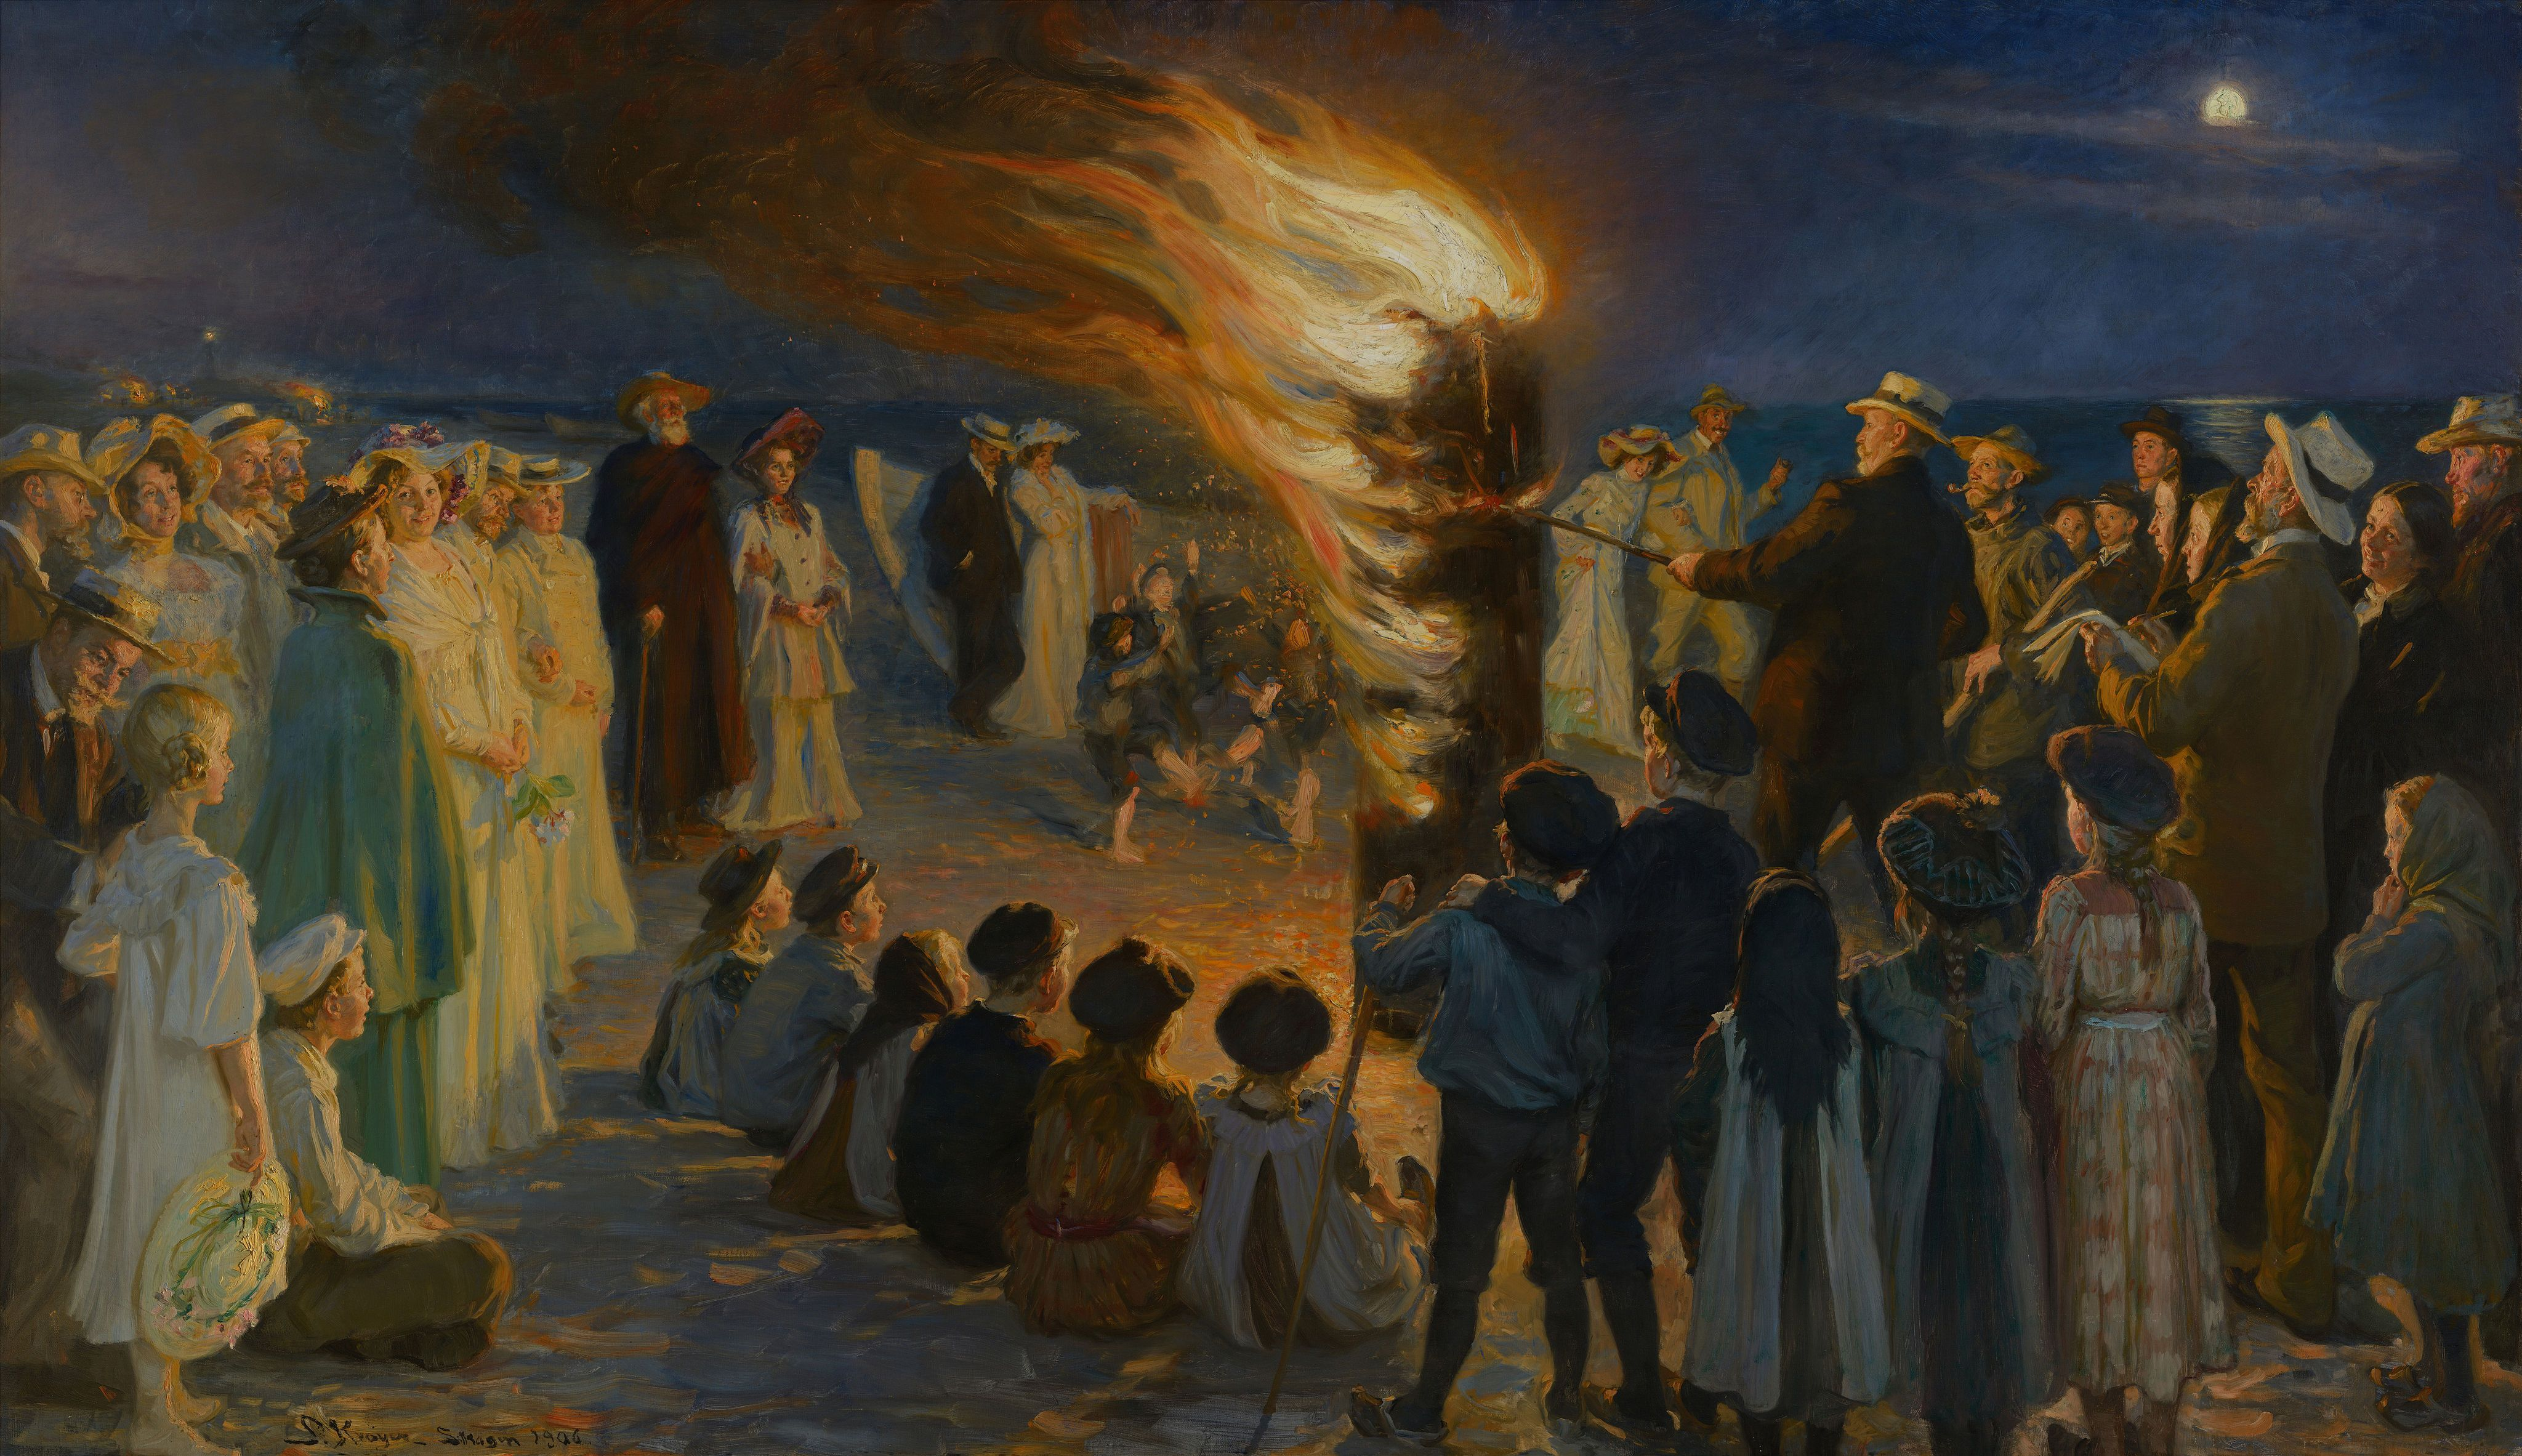 Peder Severin Krøyer (Norvegian-Danish 1851–1909) Midsummer Eve bonfire on Skagen's beach, 1906 Full res 16 MB https://upload.wikimedia.org/wikipedia/commons/9/99/Midsummer_Eve_bonfire_on_Skagen%27s_beach_-_P.S._Kr%C3%B8yer_-_Google_Cultural_Institute.jpg